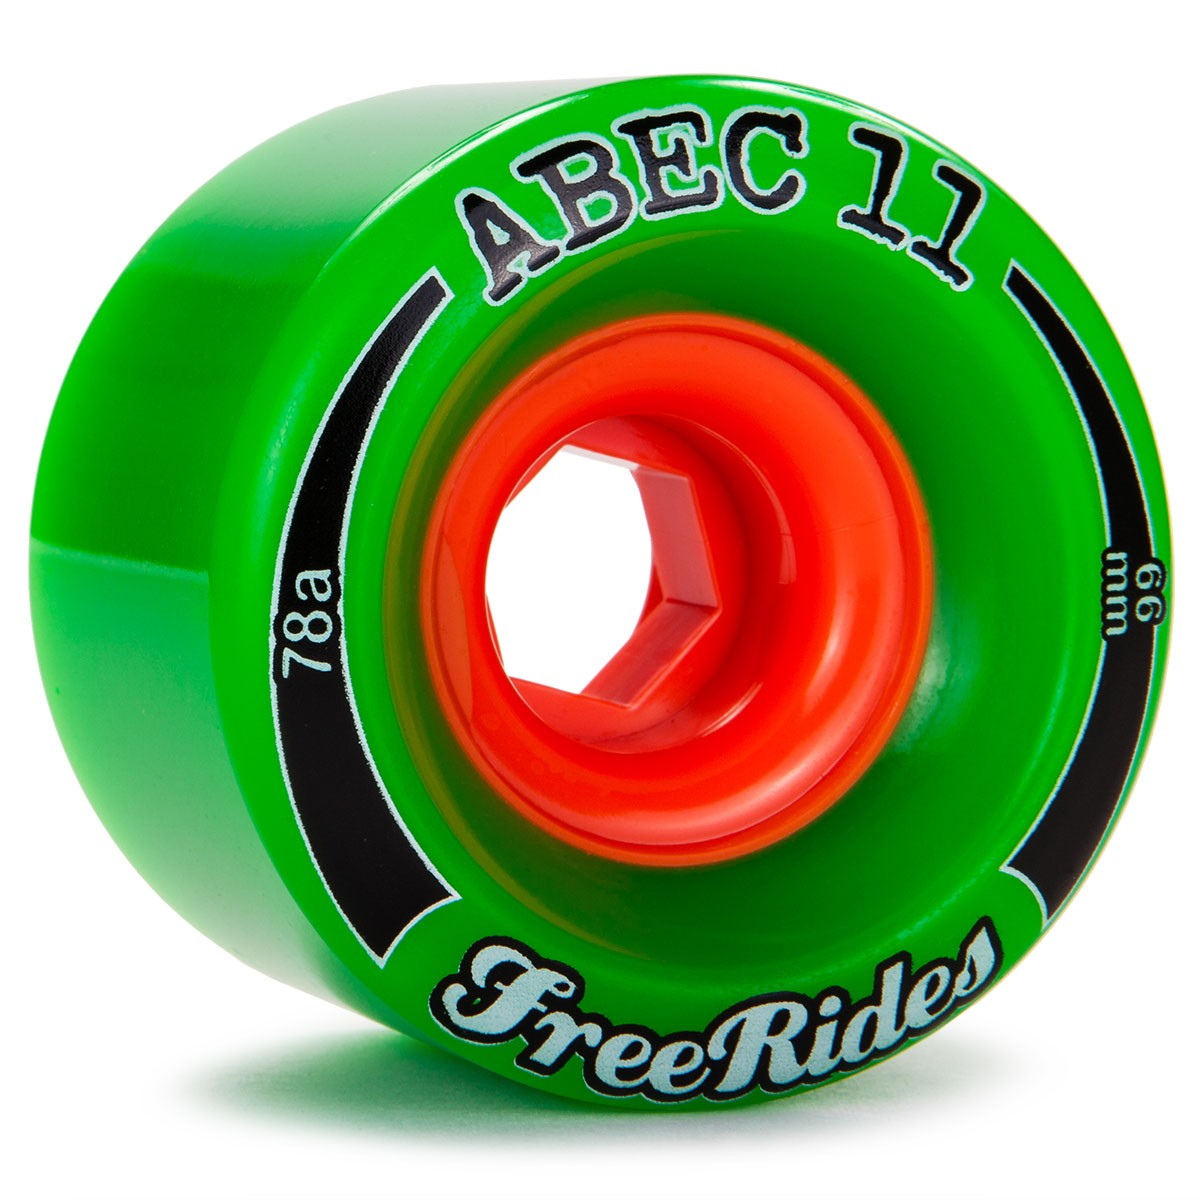 Abec11 Classic FreeRides Longboard Wheels 66mm